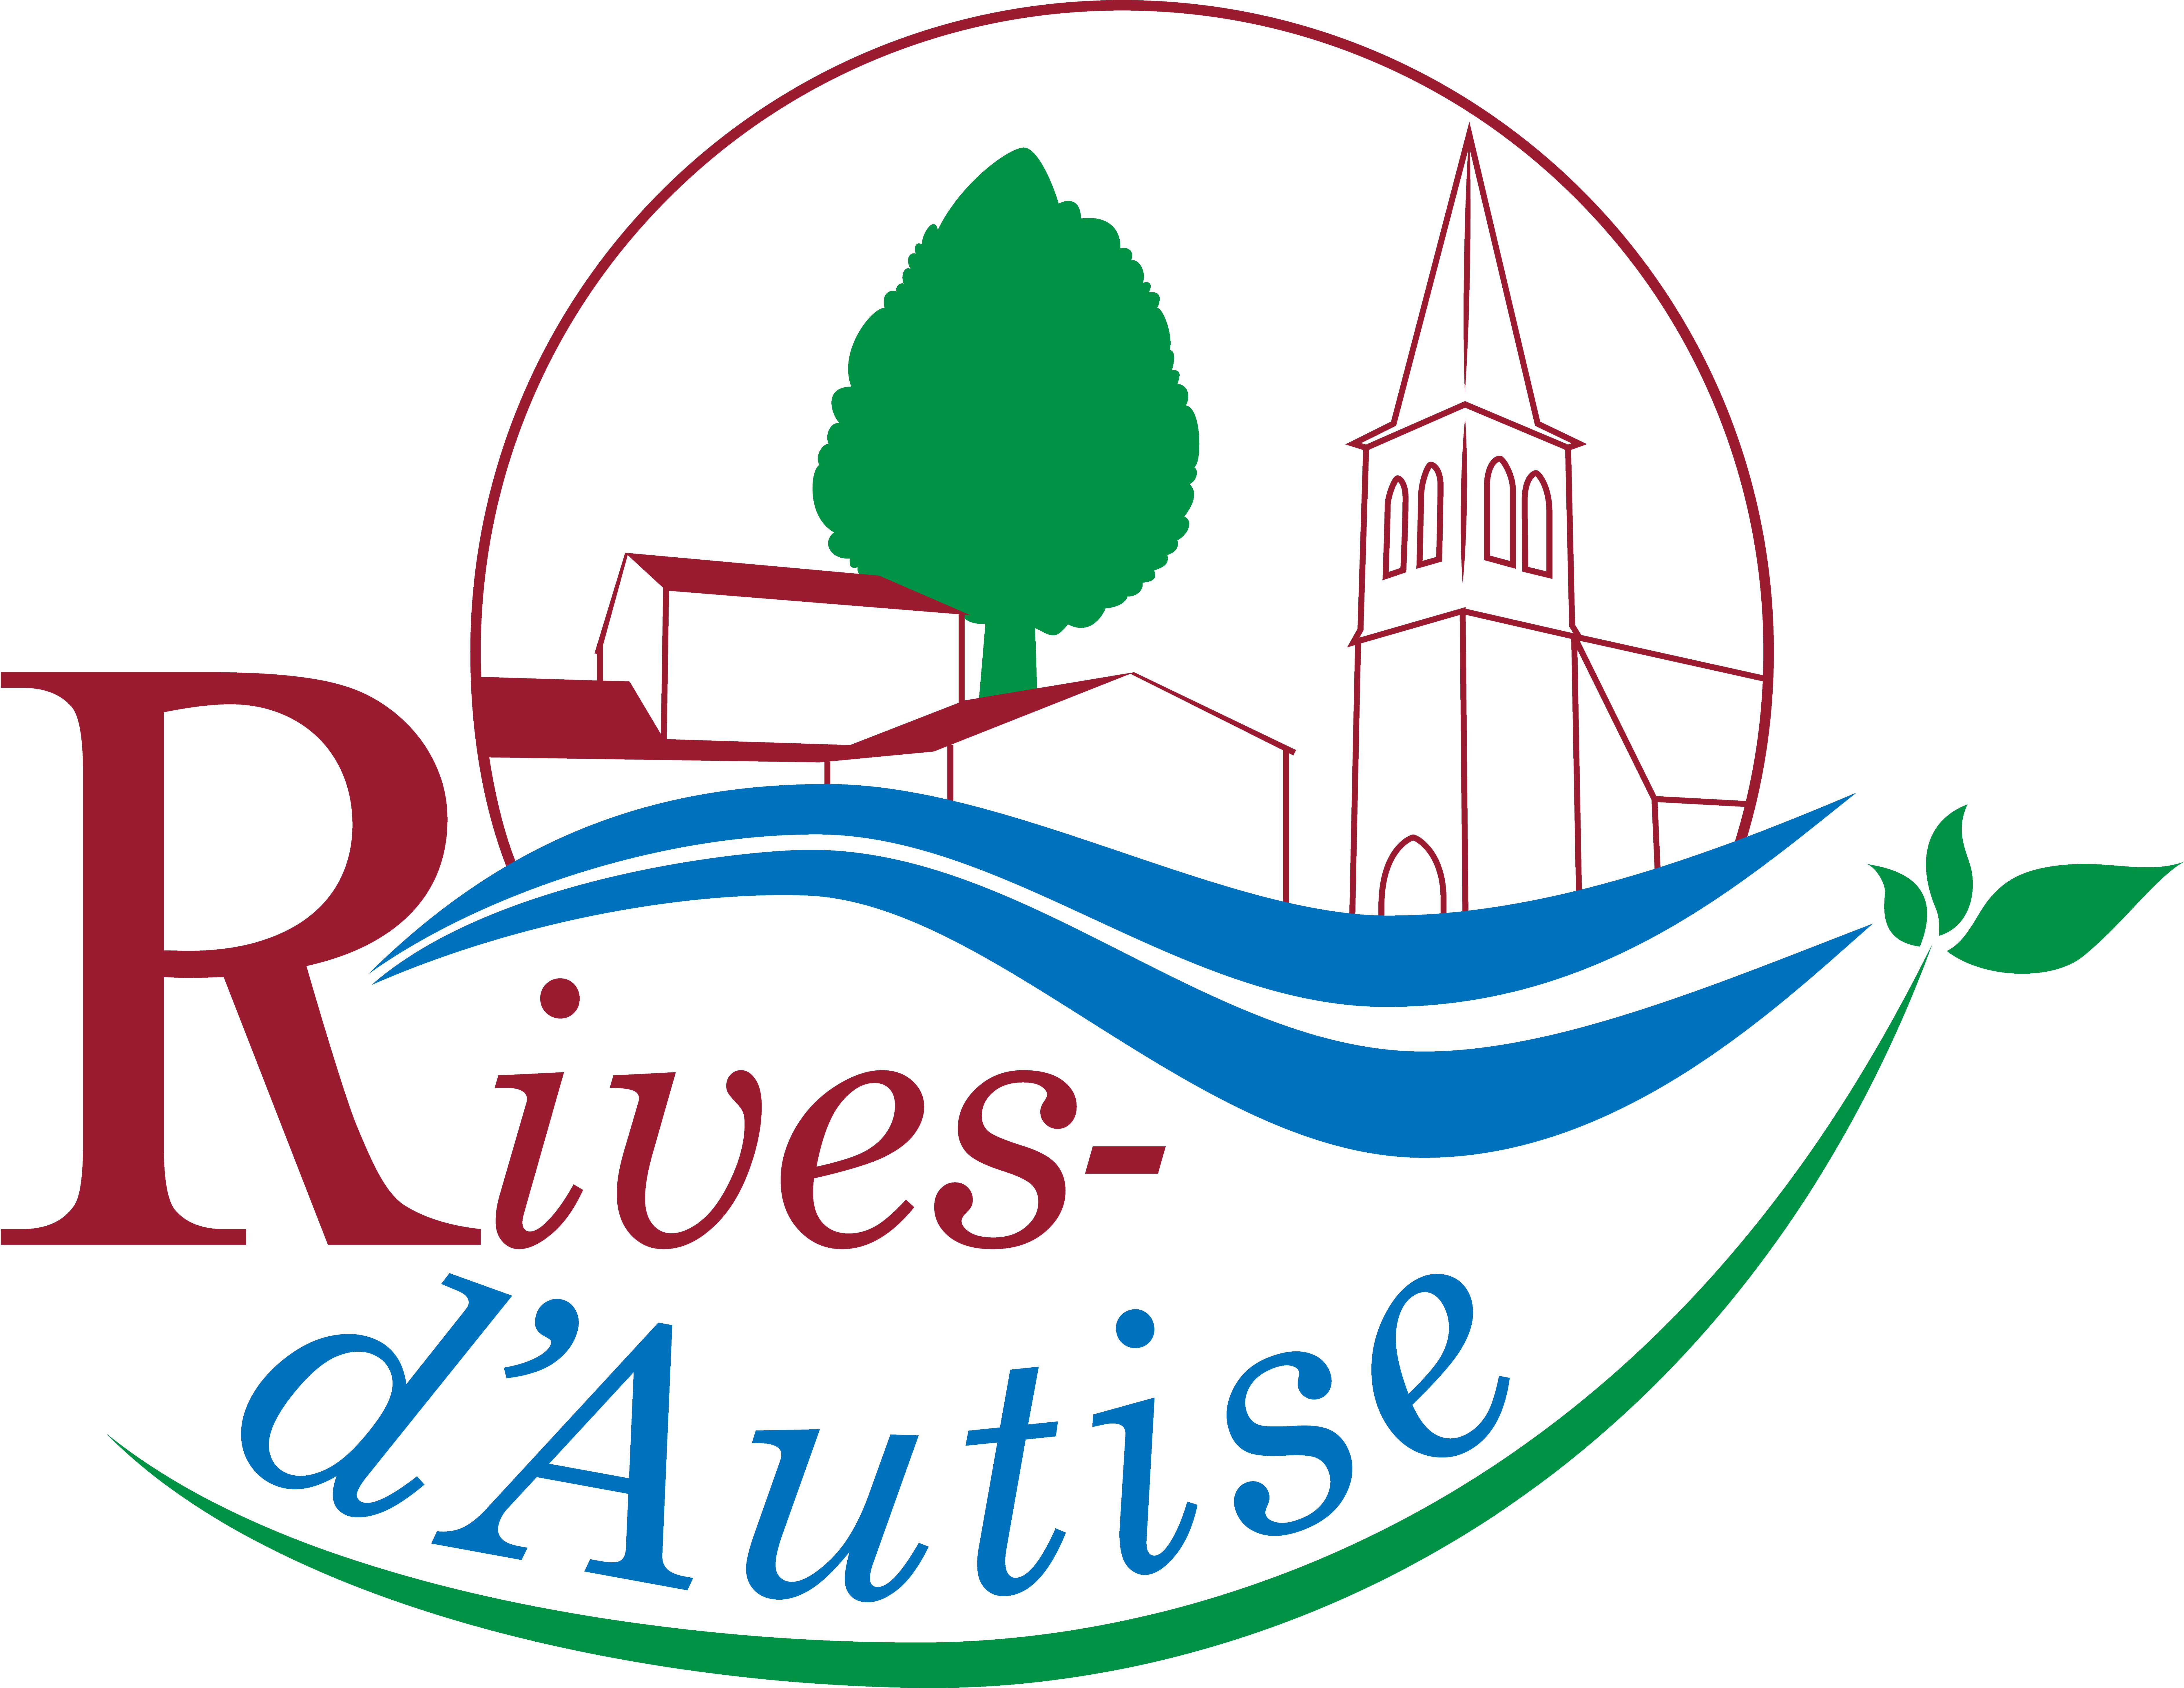 Rives d'Autise